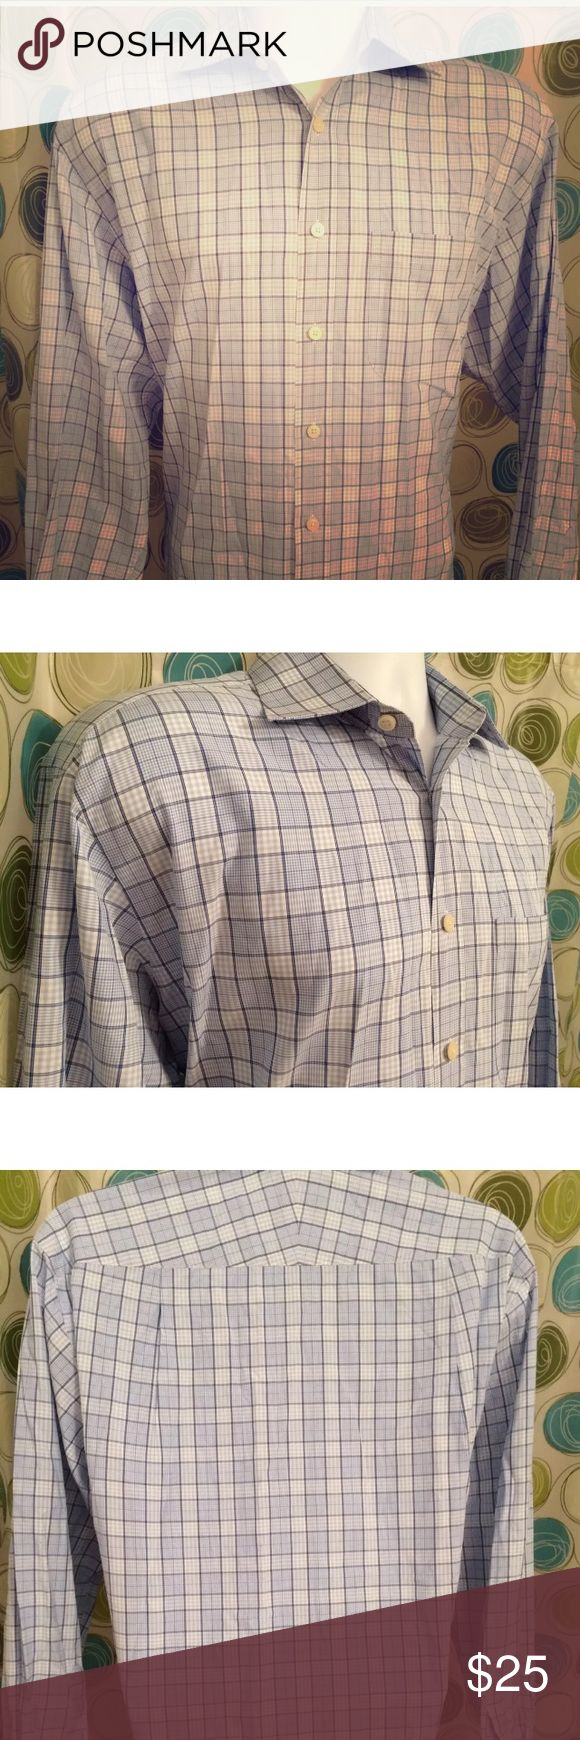 "CHARLES TYRWHITT French cuff plaid shirt 16 1/2 Luxury brand  CHARLES TYRWHITT  Jermyn Street London  In excellent condition  French cuff  Two toned blue plaid  16 1/2  36"" sleeve Charles Tyrwhitt Shirts Casual Button Down Shirts"